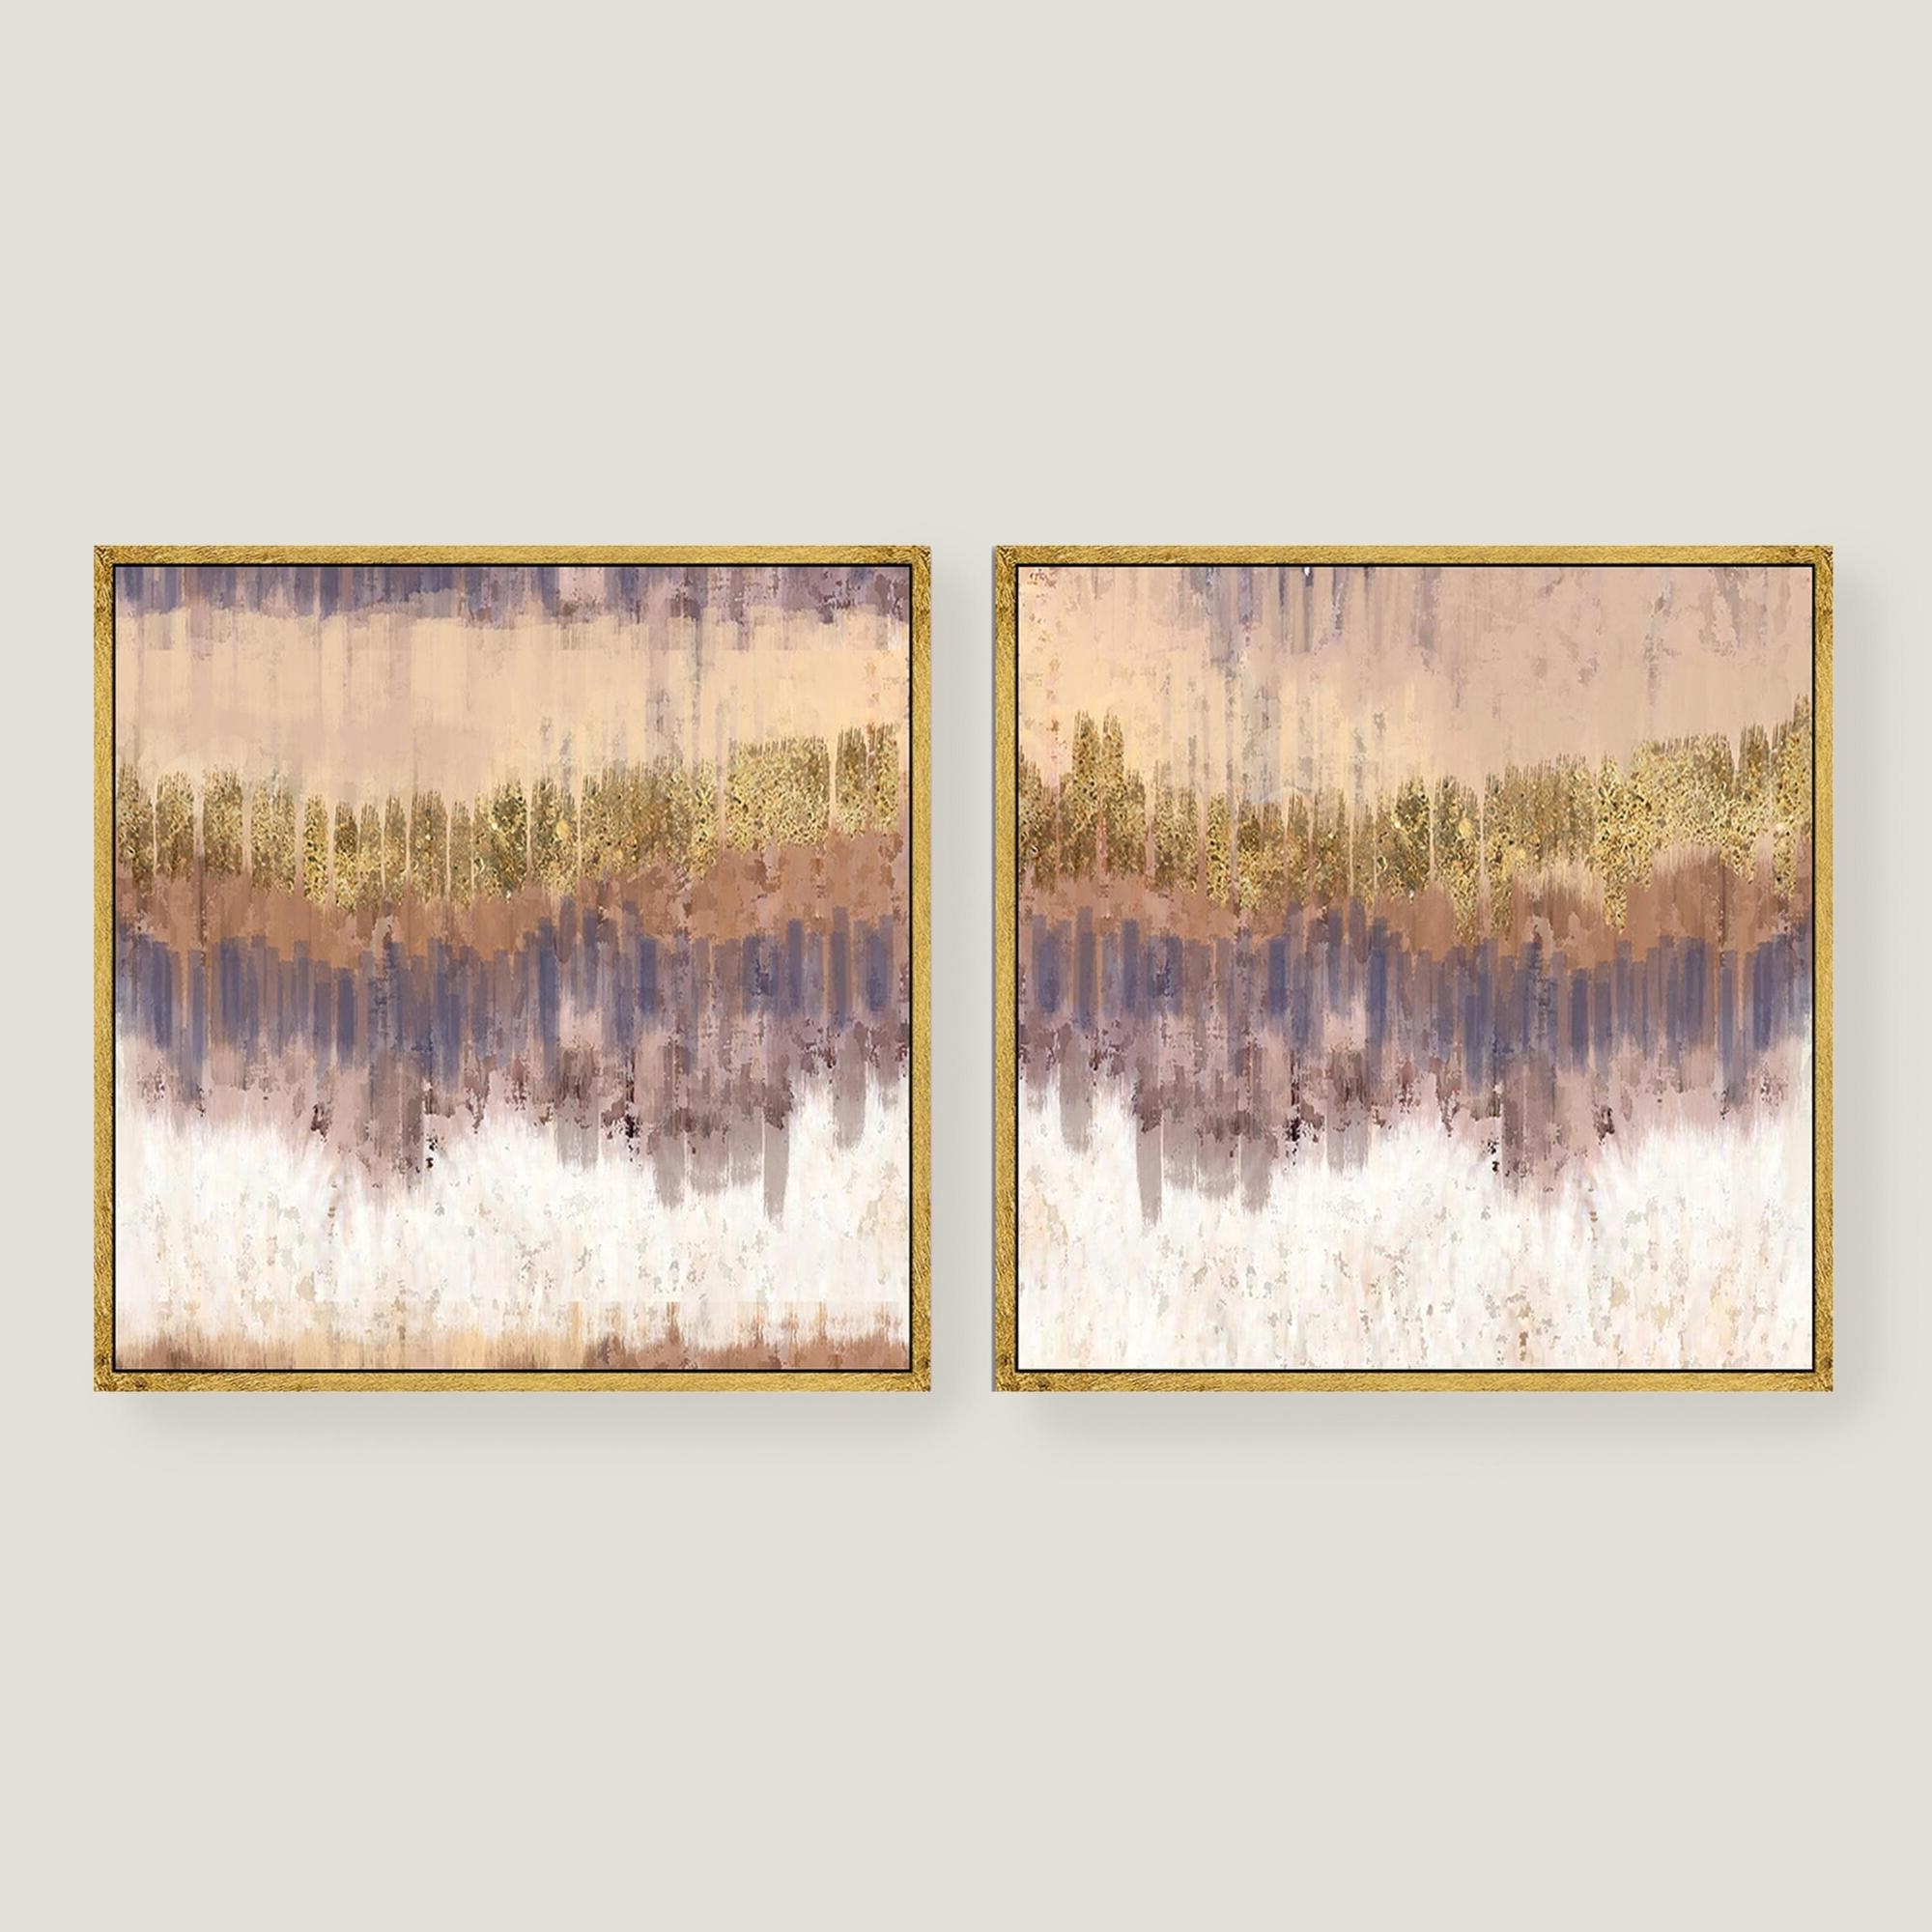 Gold Canvas Wall Art In Well Known Wall Art Designs: Kirklands Wall Art Golden Field Abstract Canvas (View 5 of 15)